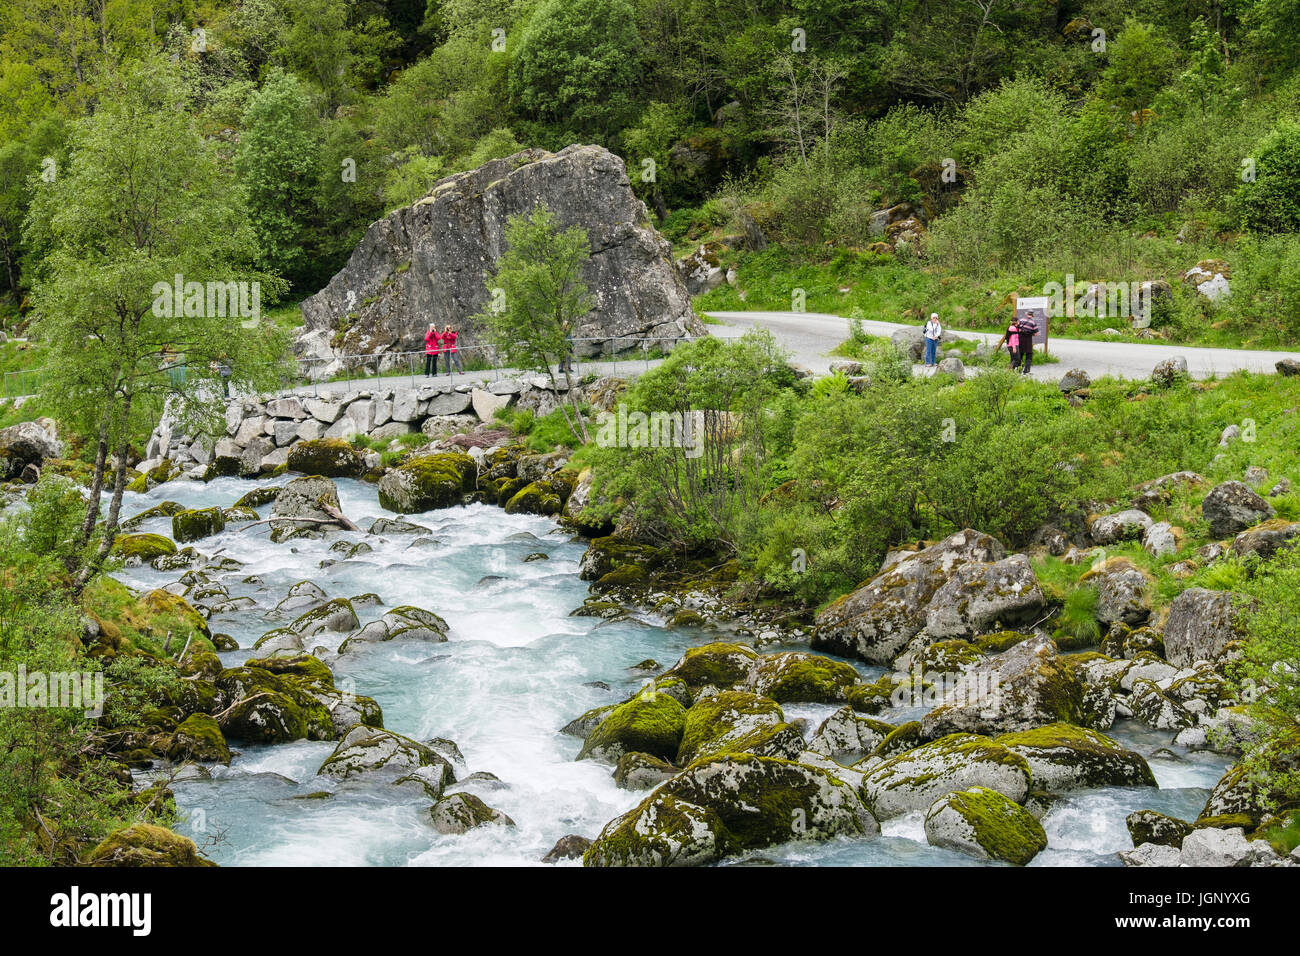 River and tourist trail to Briksdalsbreen or Briksdal glacier through Briksdalen or Briks valley in Jostedalsbreen - Stock Image